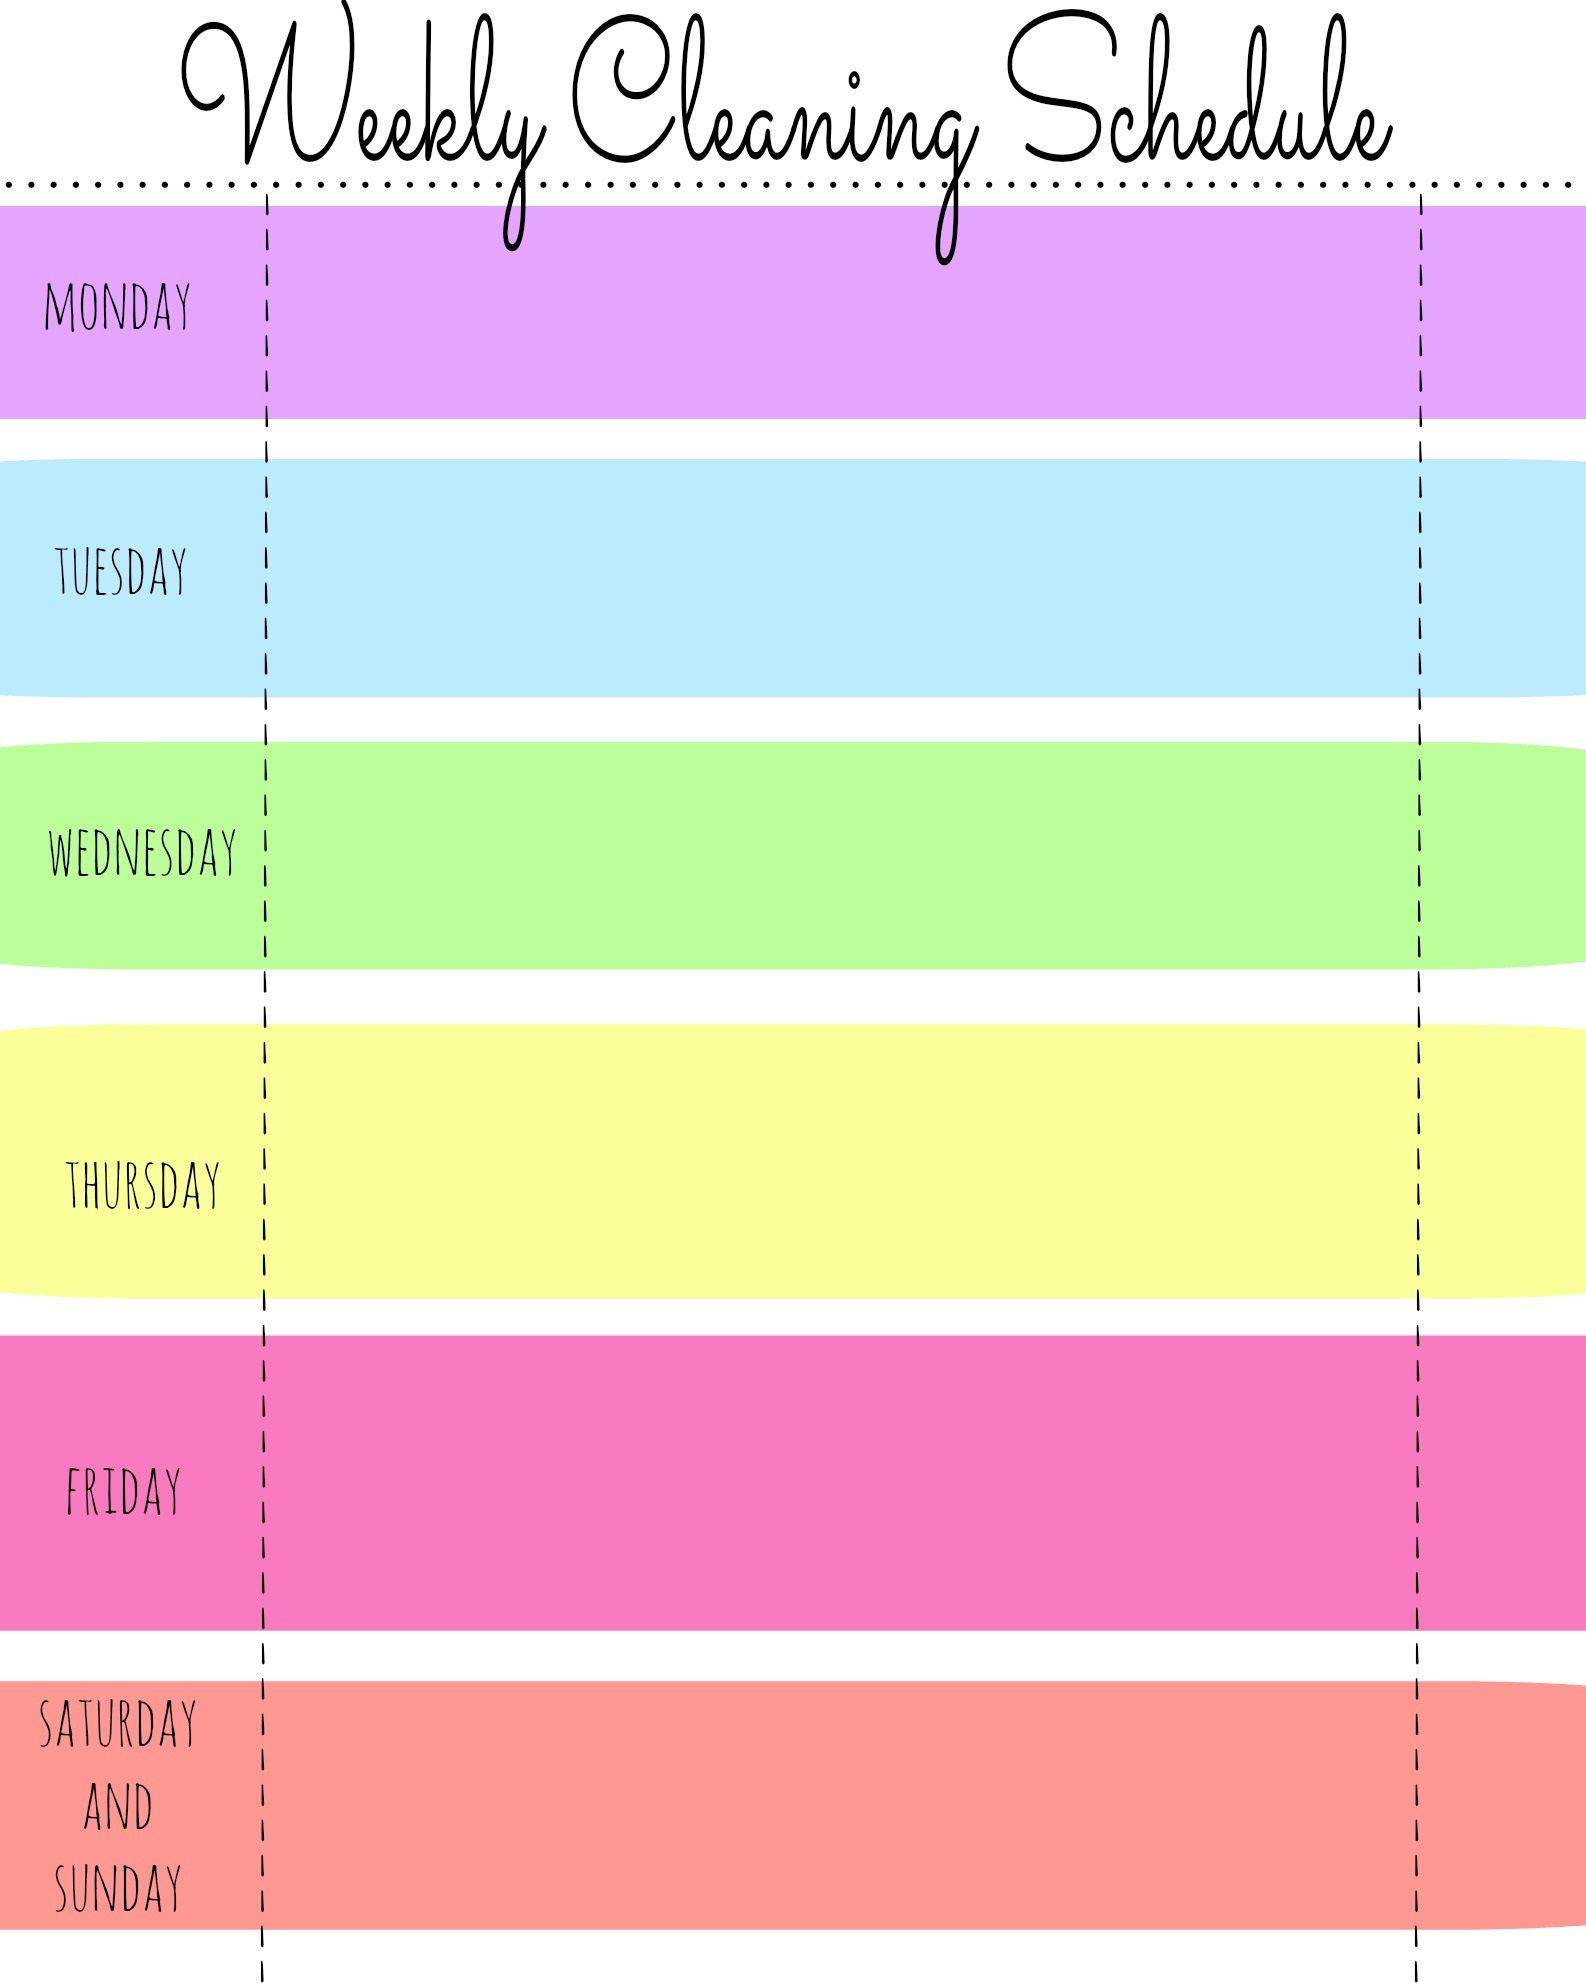 003 Dreaded Free Printable Weekly Cleaning Schedule Template Sample  OfficeFull